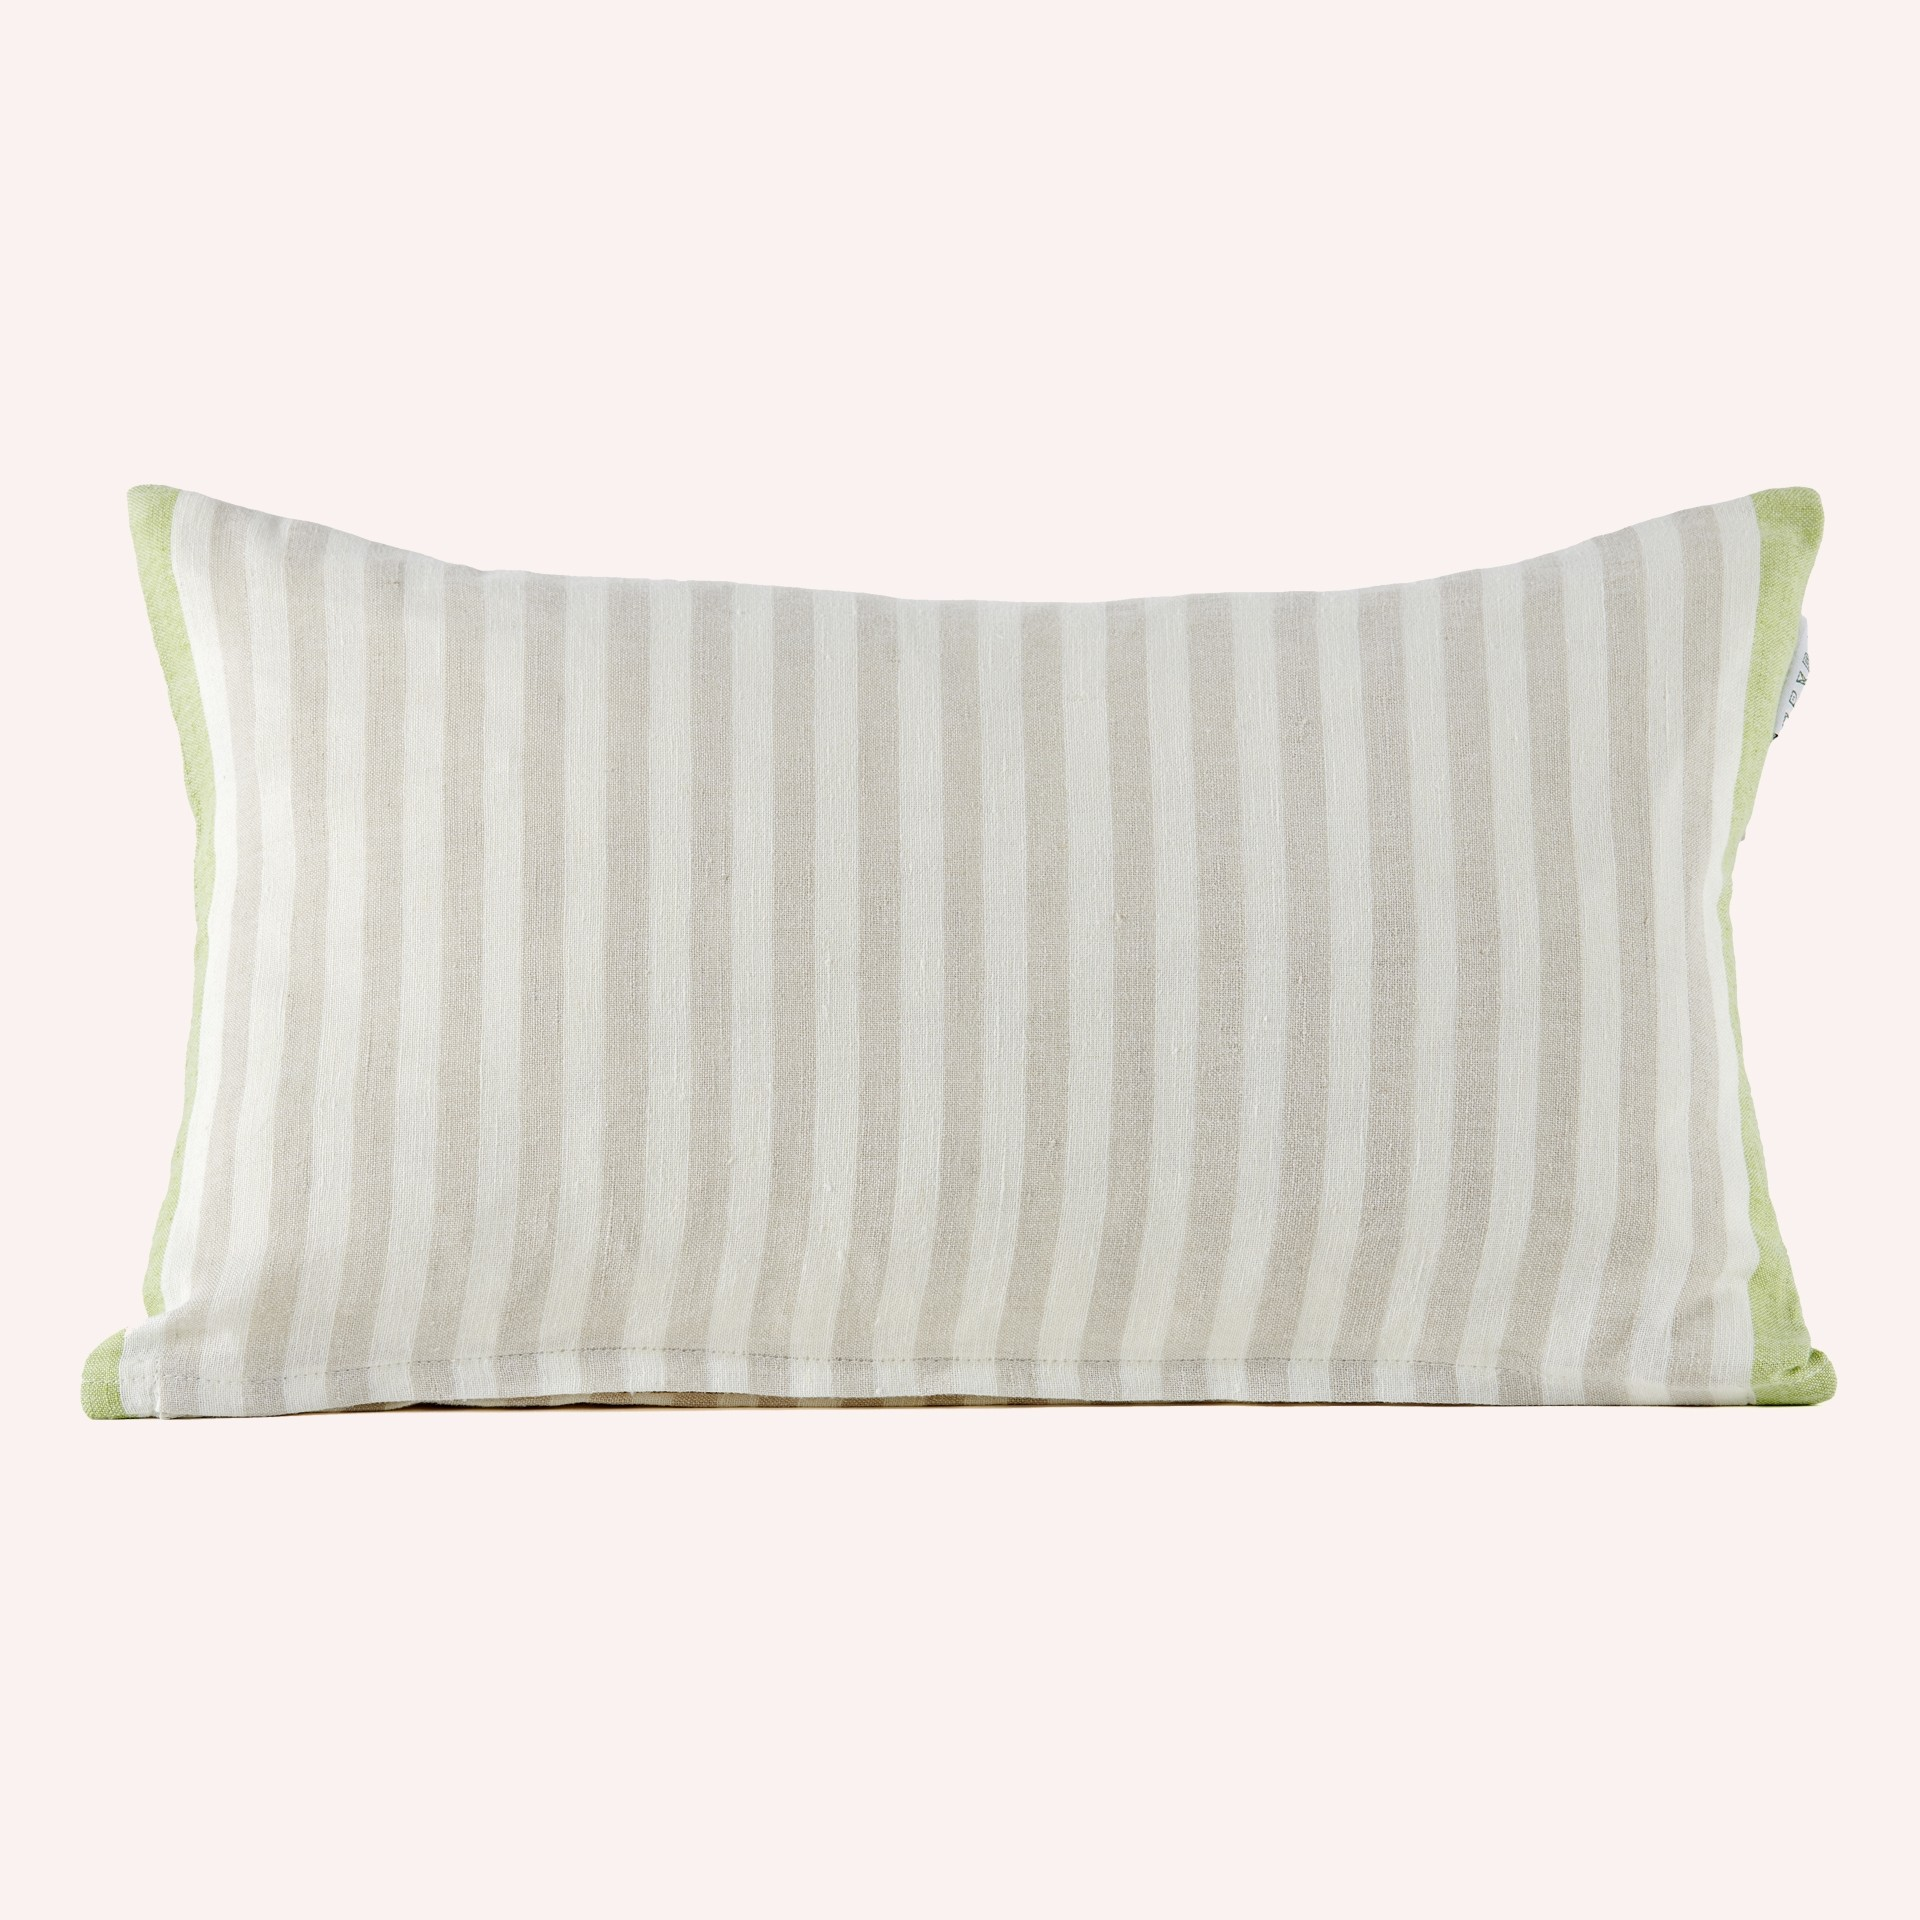 Cushion cover Ersi (30x50)